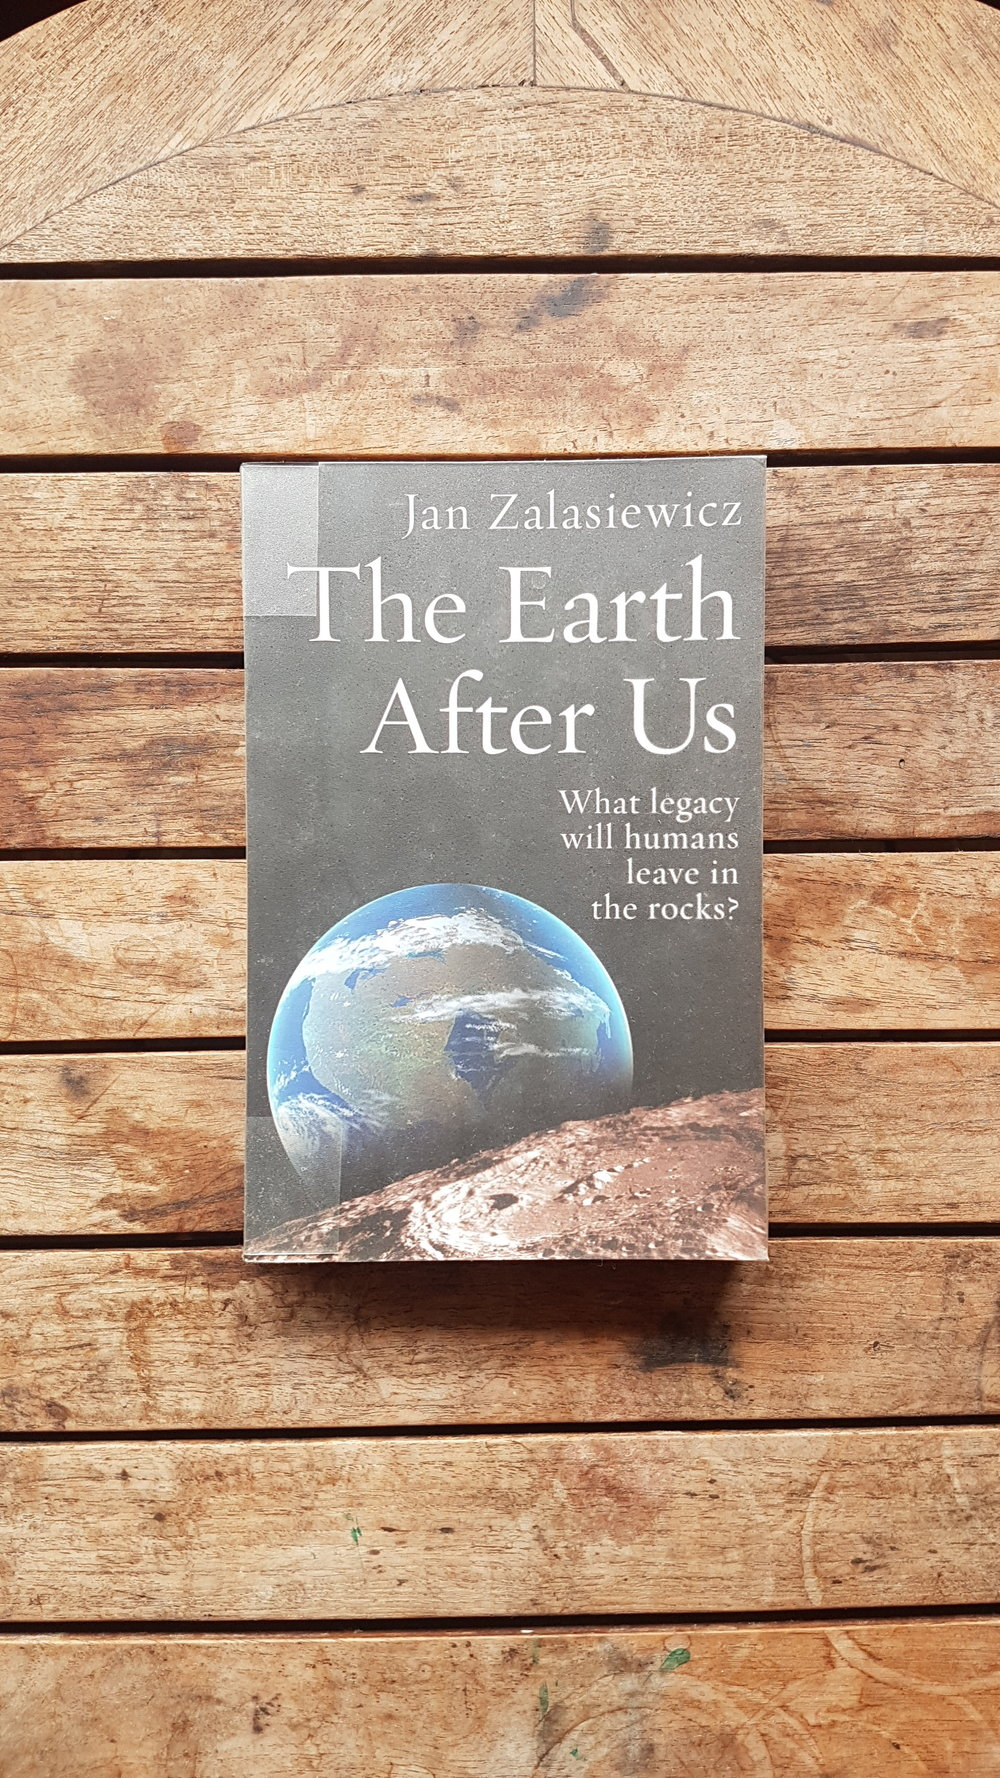 The Earth After Us: What Legacy Will Humans Leave in the Rocks?   by Jan Zalasieqicz